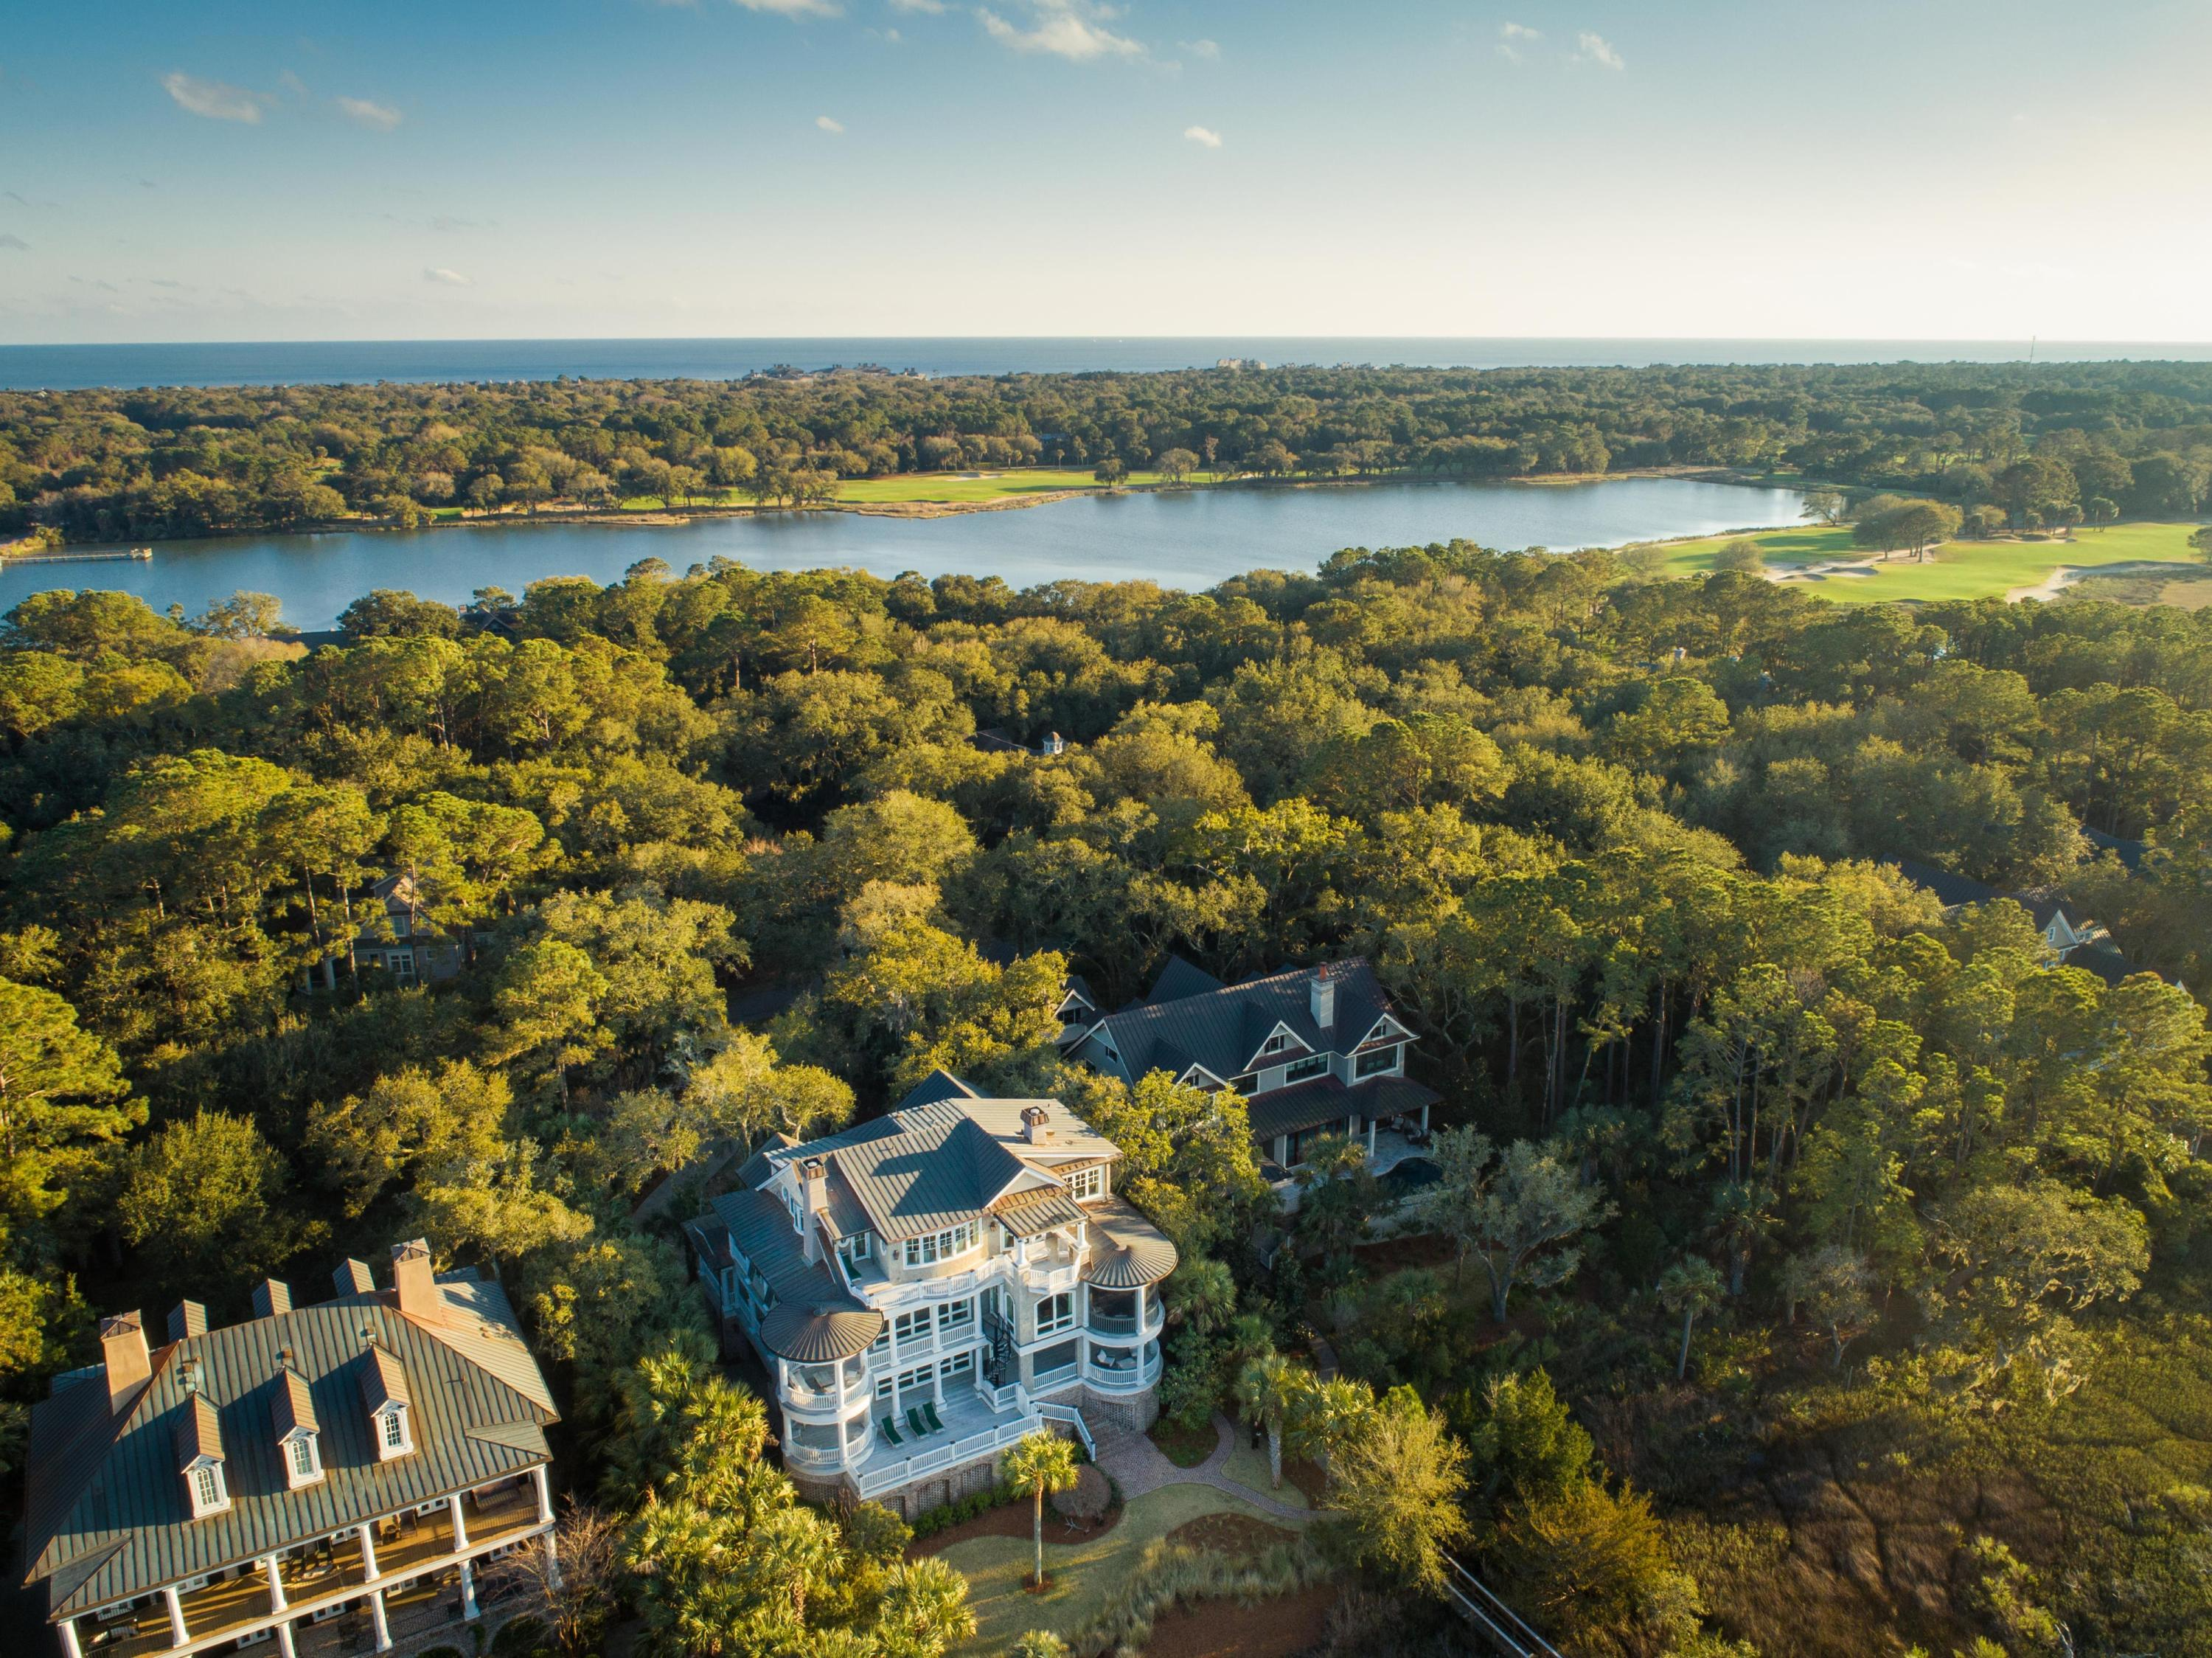 Rhetts Bluff Homes For Sale - 51 River Marsh, Kiawah Island, SC - 10